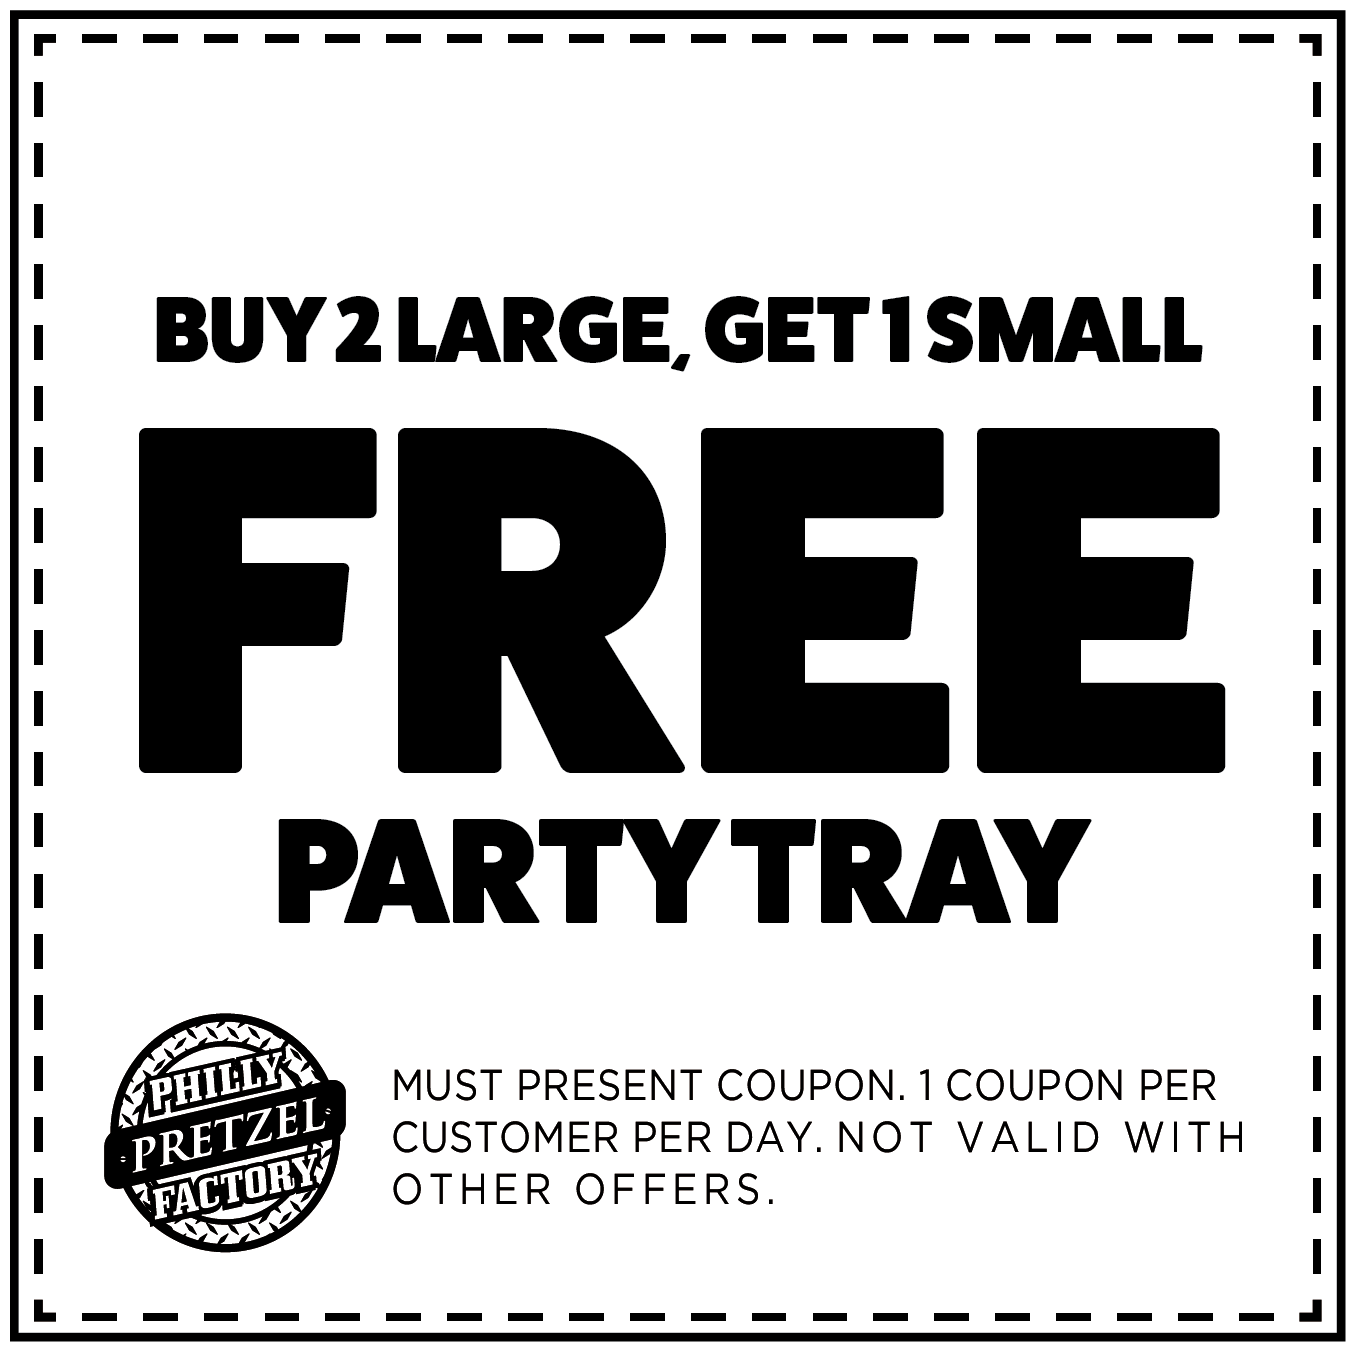 Buy 2 Large, Get 1 Small Free Party Tray